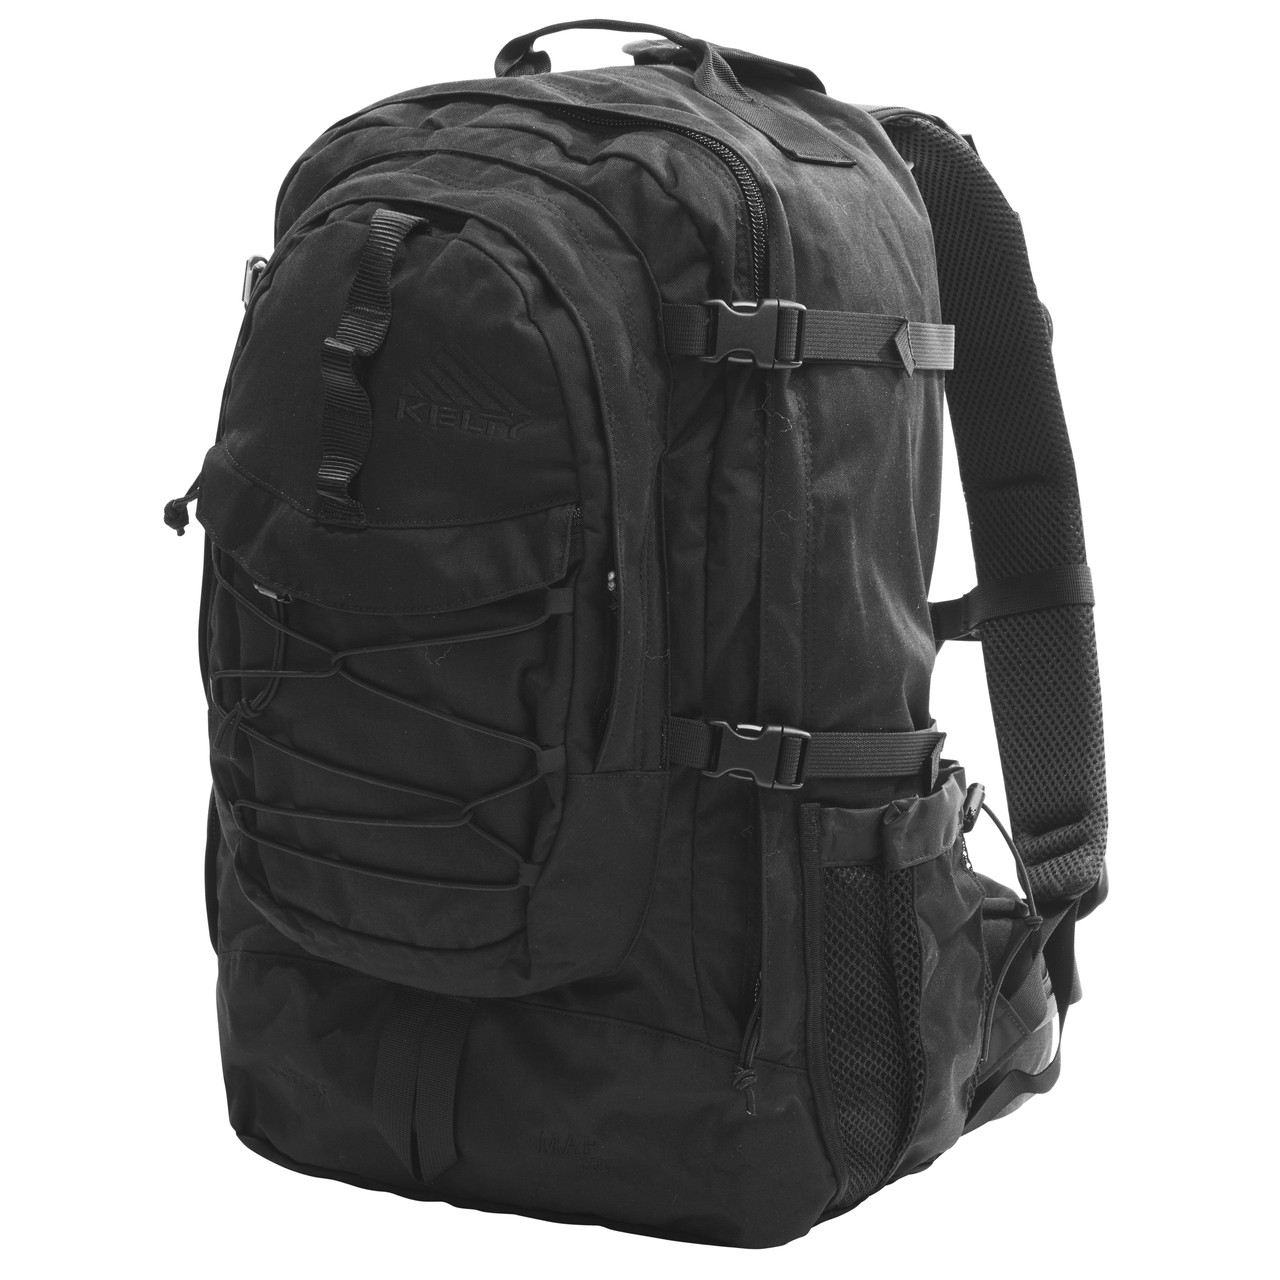 Map 3500.Kelty Map 3500 Military Tactical Backpack Black